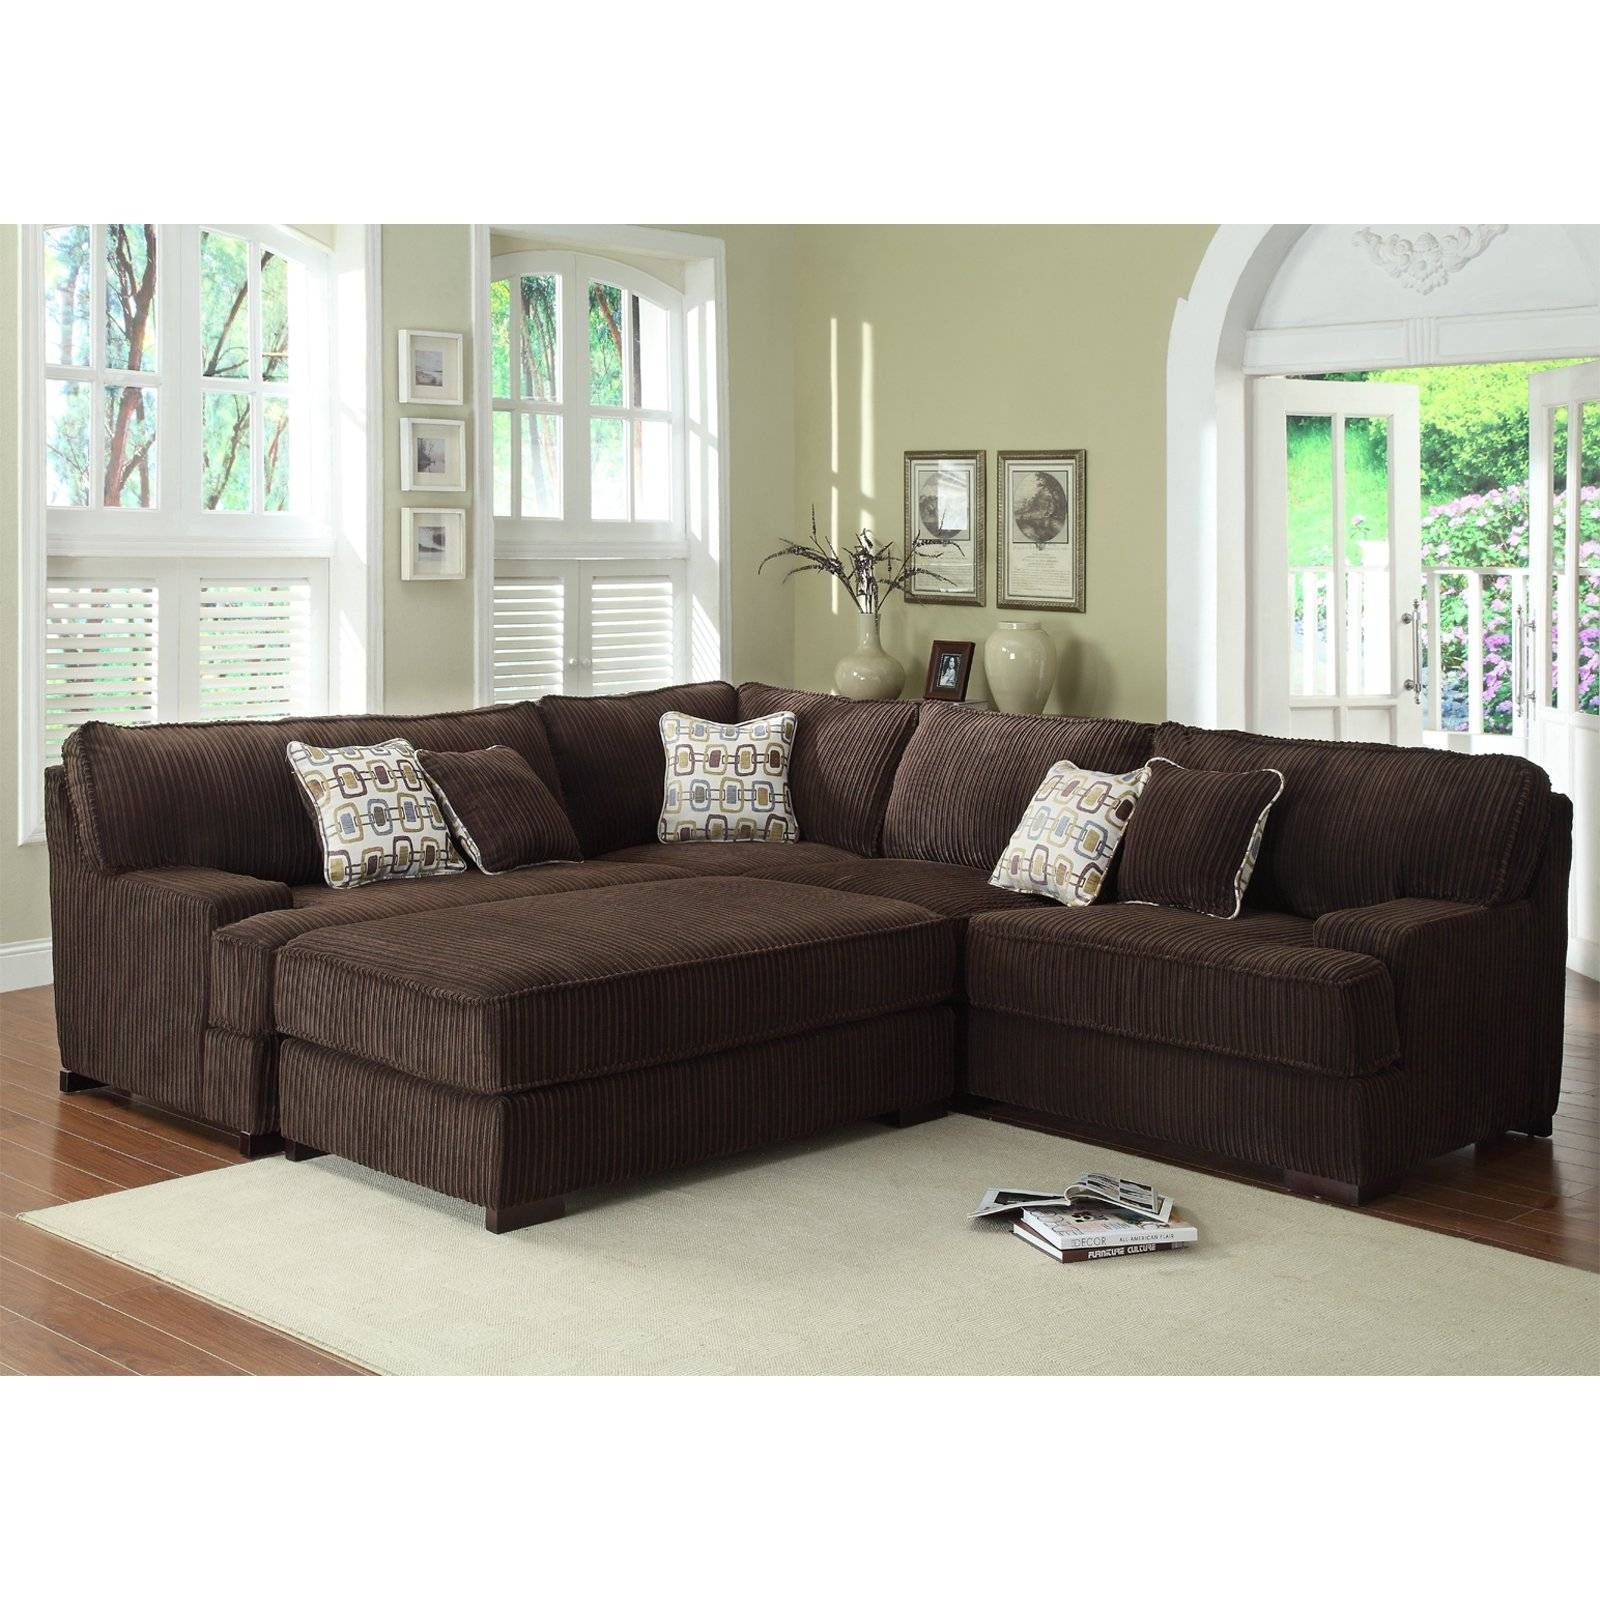 25 Best Ideas About U Shaped Sofa On Pinterest U Shaped Couch 10 Pertaining To 10 Foot Sectional Sofa (View 19 of 30)